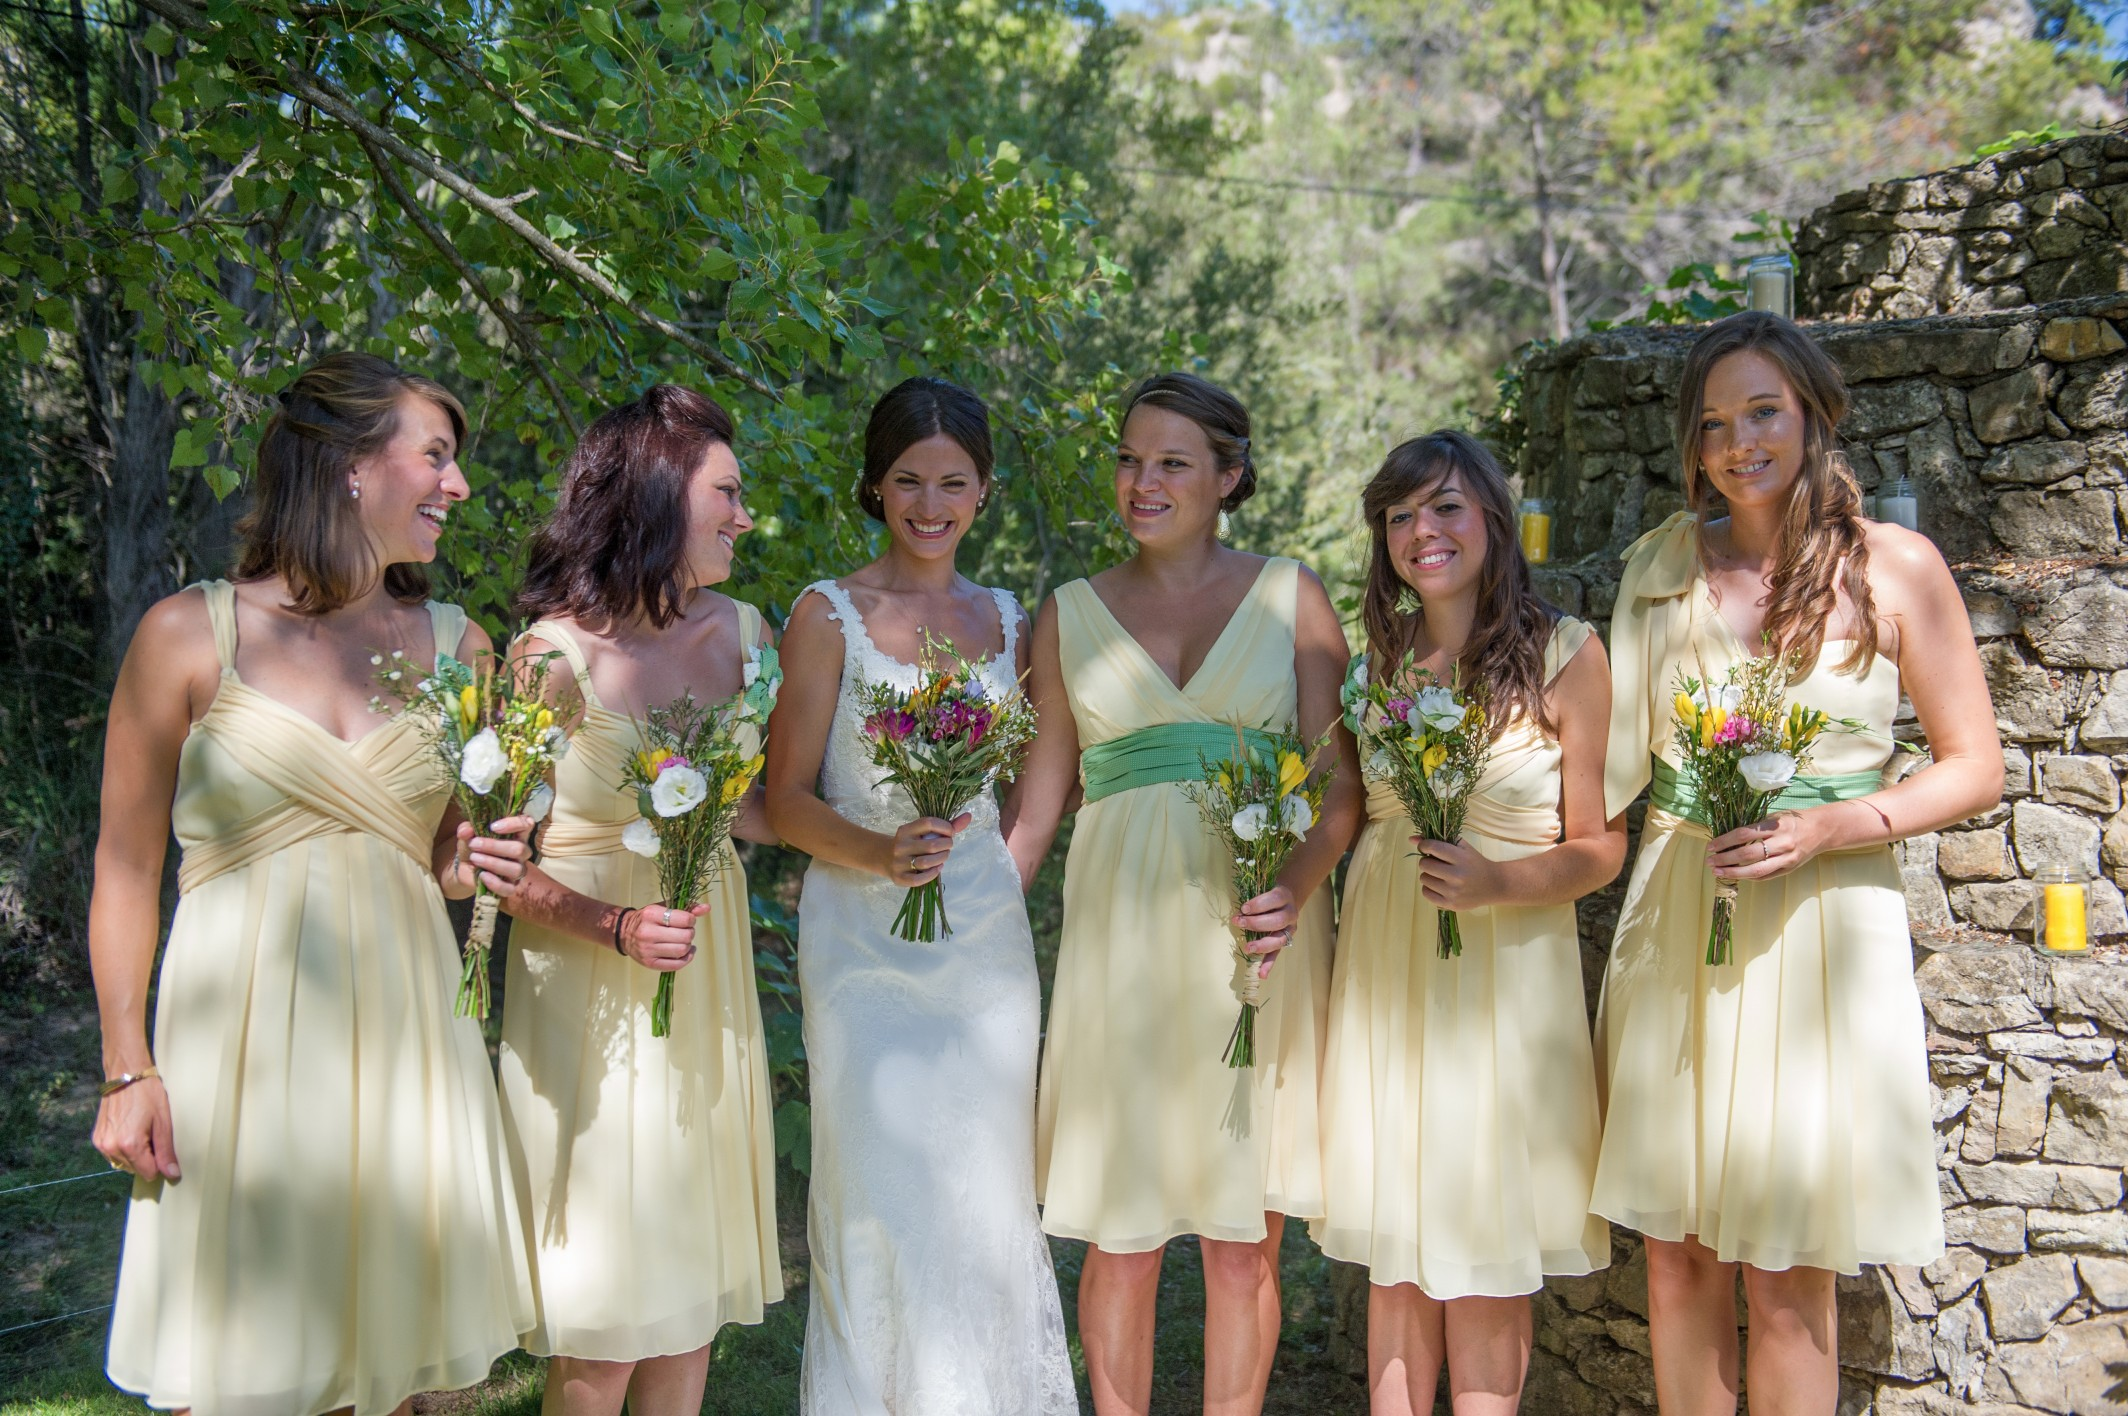 Wedding photography - South of France wedding - the bride and her bridesmaids